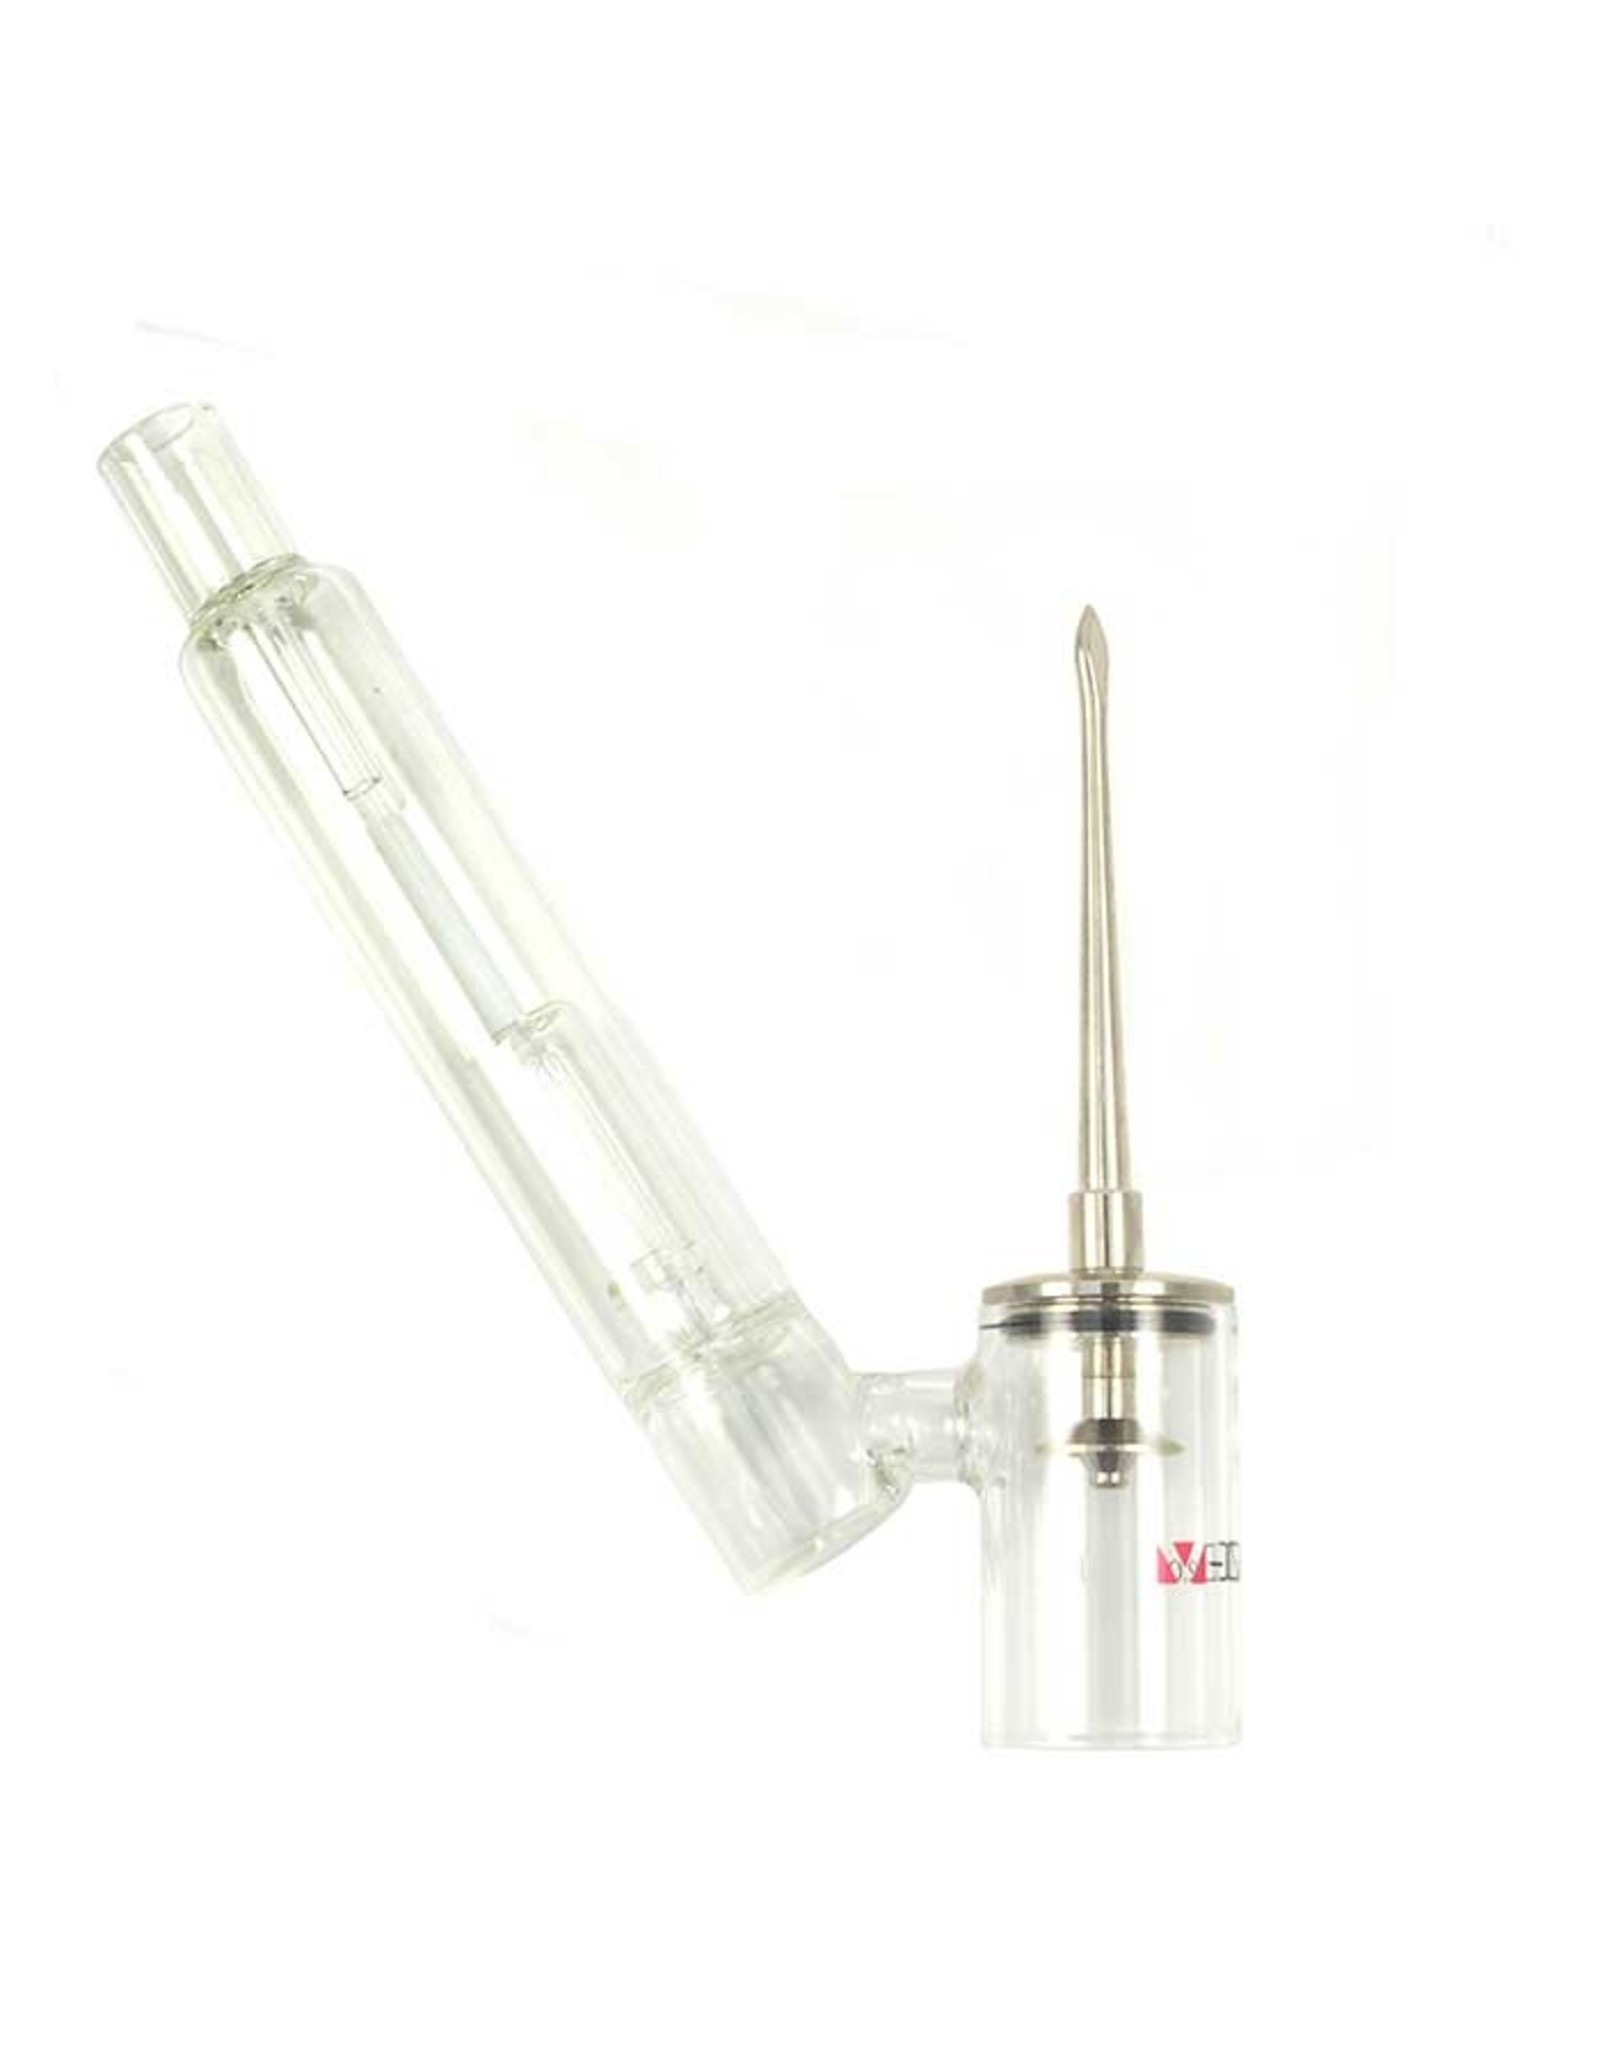 XMAX XMAX V-ONE 2.0 Glass Bubbler Mouthpiece Replacement